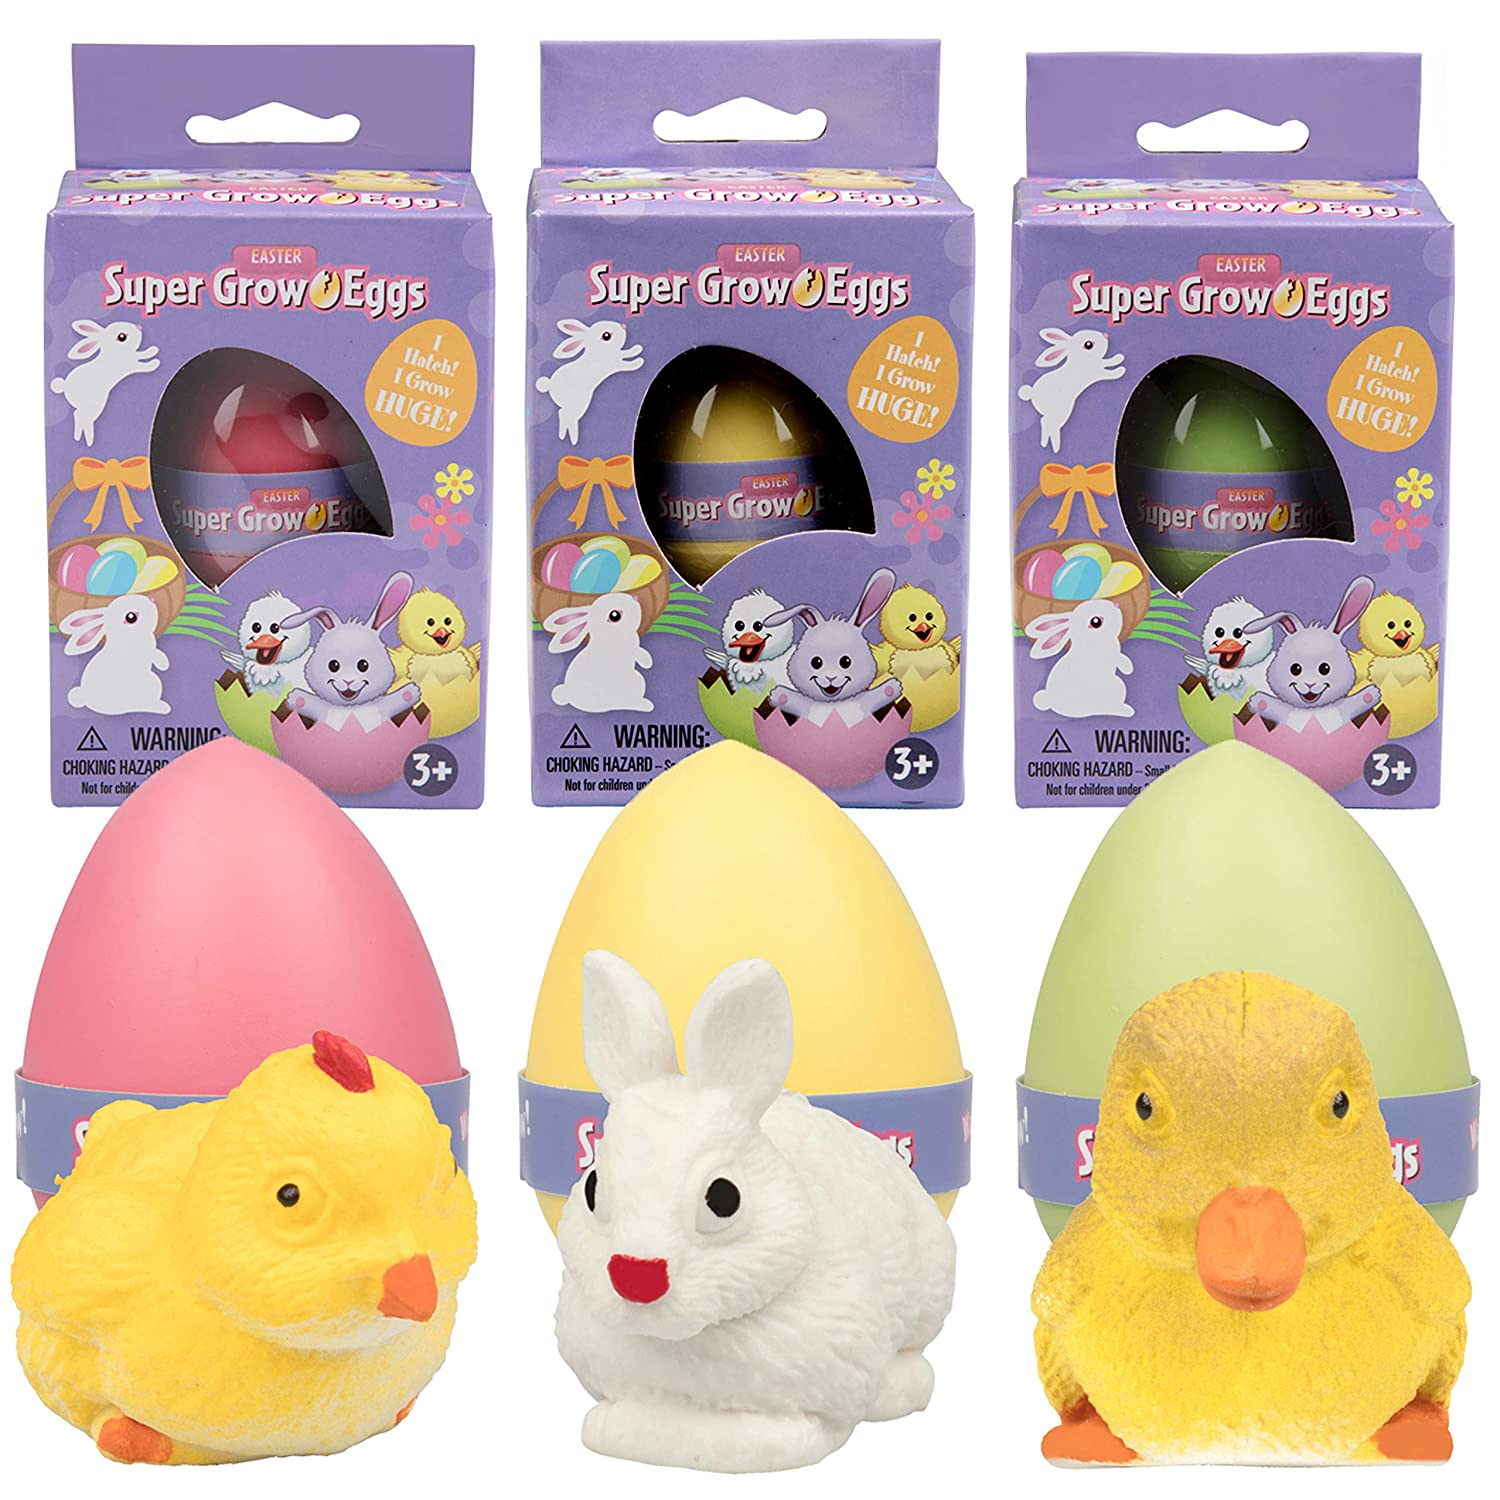 SCS Direct Easter Super Grow Eggs for Kids 1 Pack- Hatch and Grow for Easter Gifts, Baskets and Egg Hunts - Three Different Pets That Grow 5-6x Size- Bunny, Duck and Chick